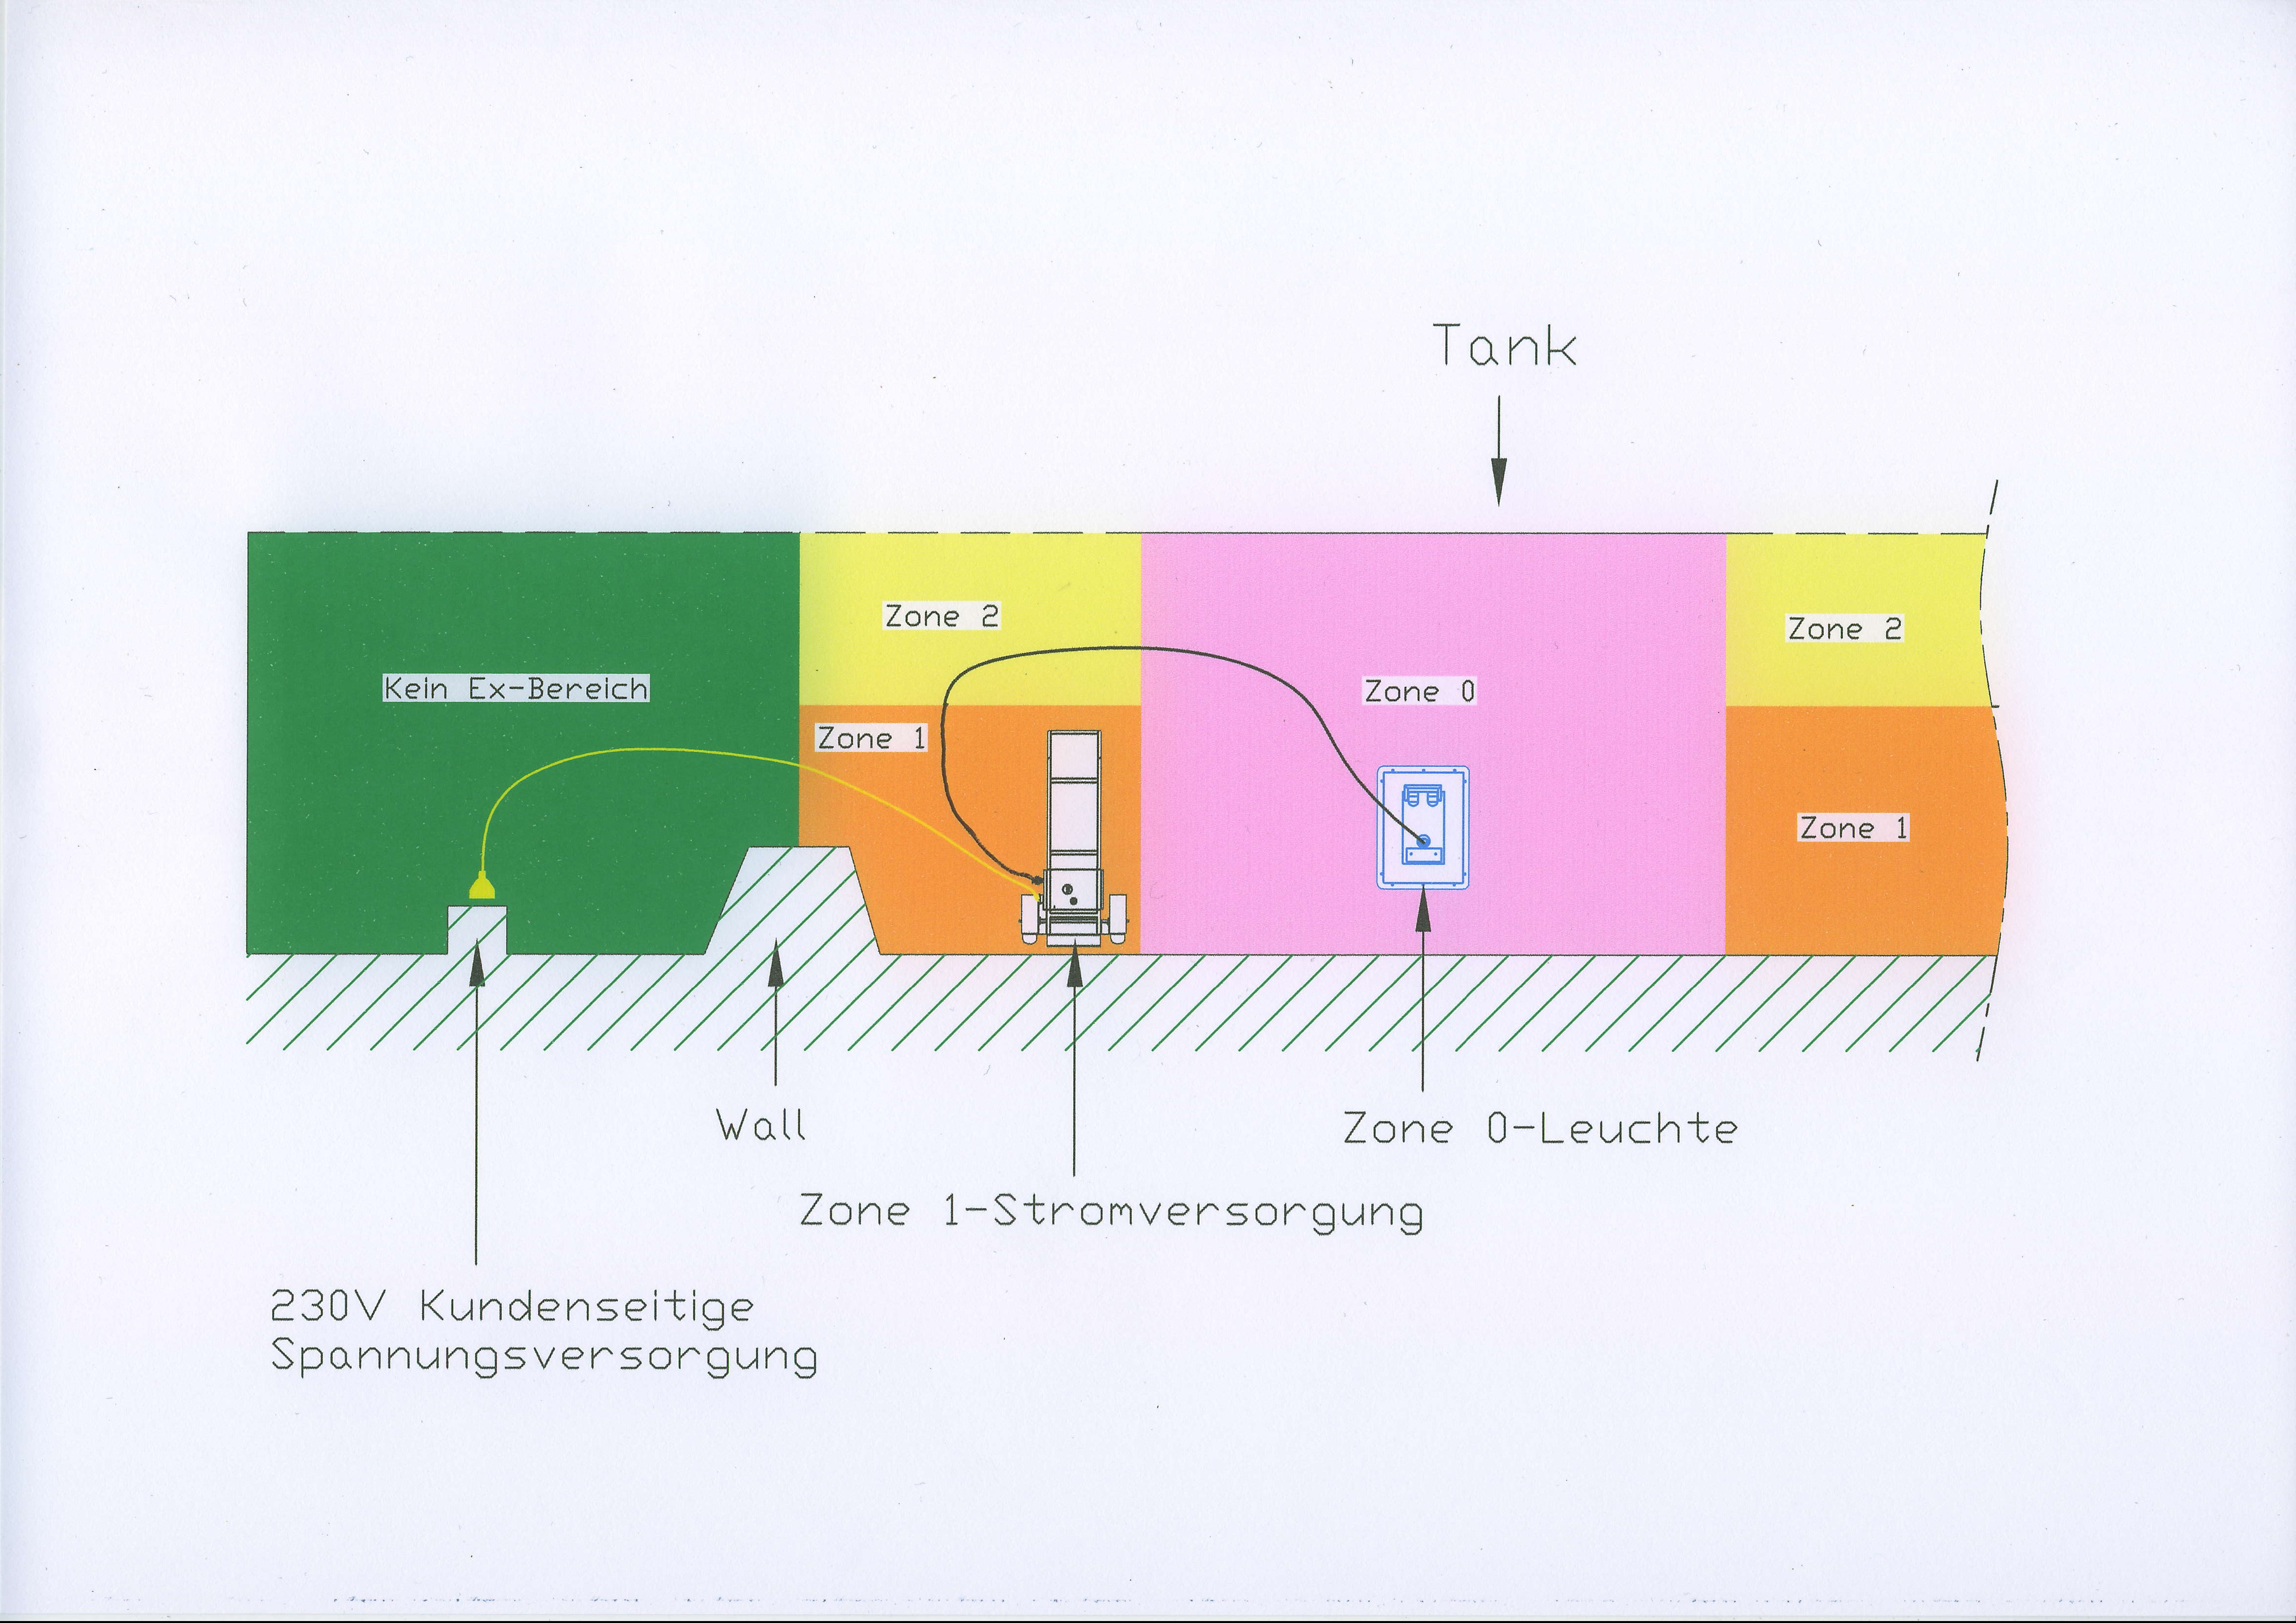 Led Zone 0 Lighting System Luminaires And Equipment For Ex Areas Diagram Of Coal Face Compact Light Fitting Bs 588